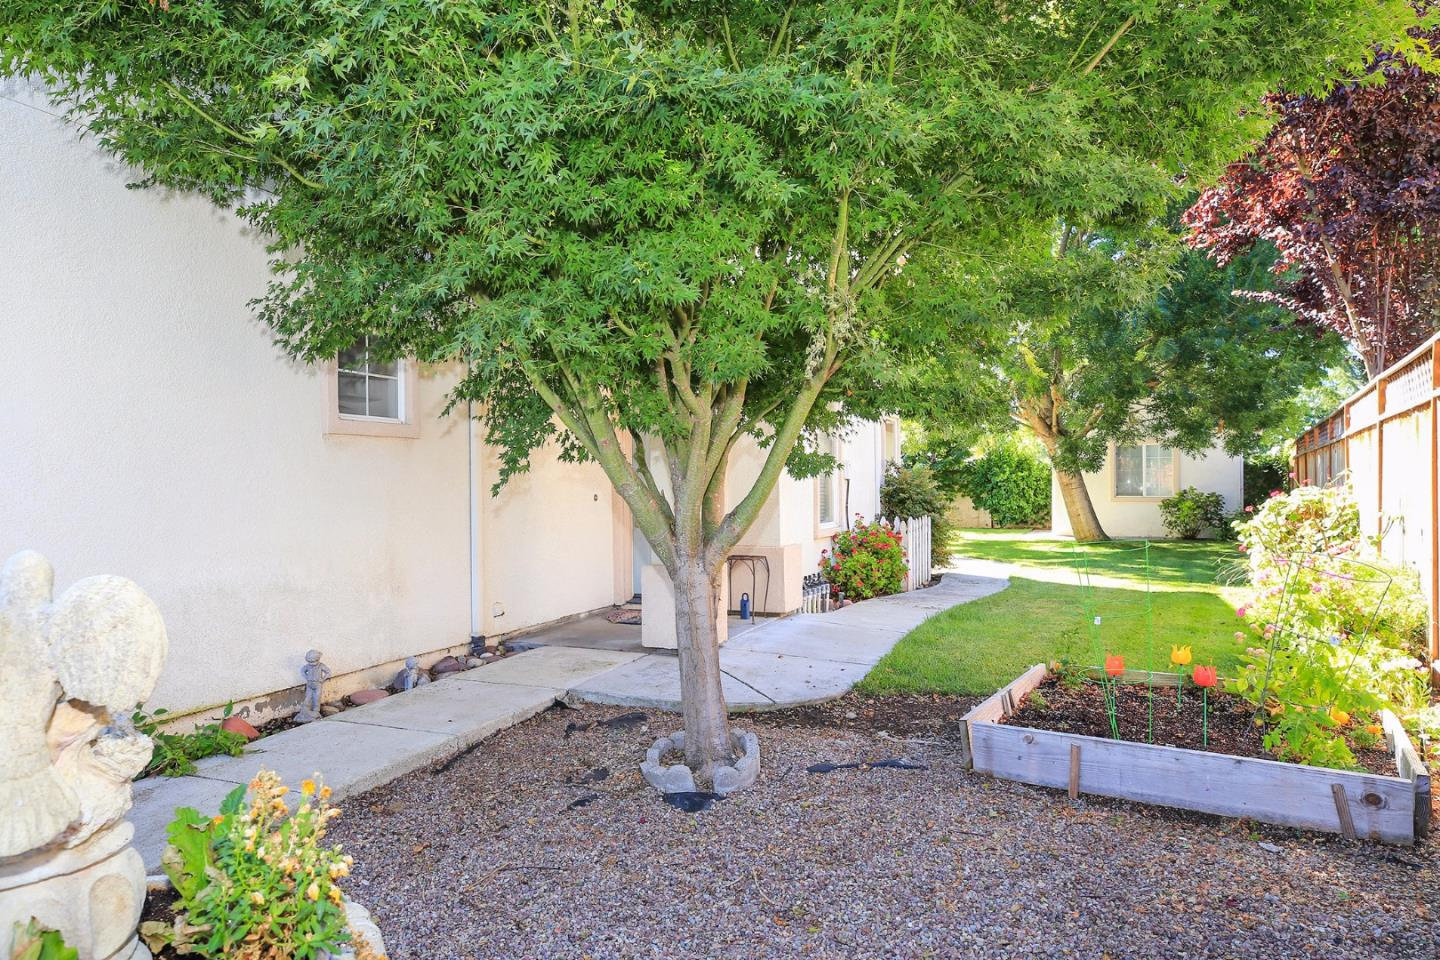 Additional photo for property listing at 1110 Sage Hill Drive  Gilroy, California 95020 United States